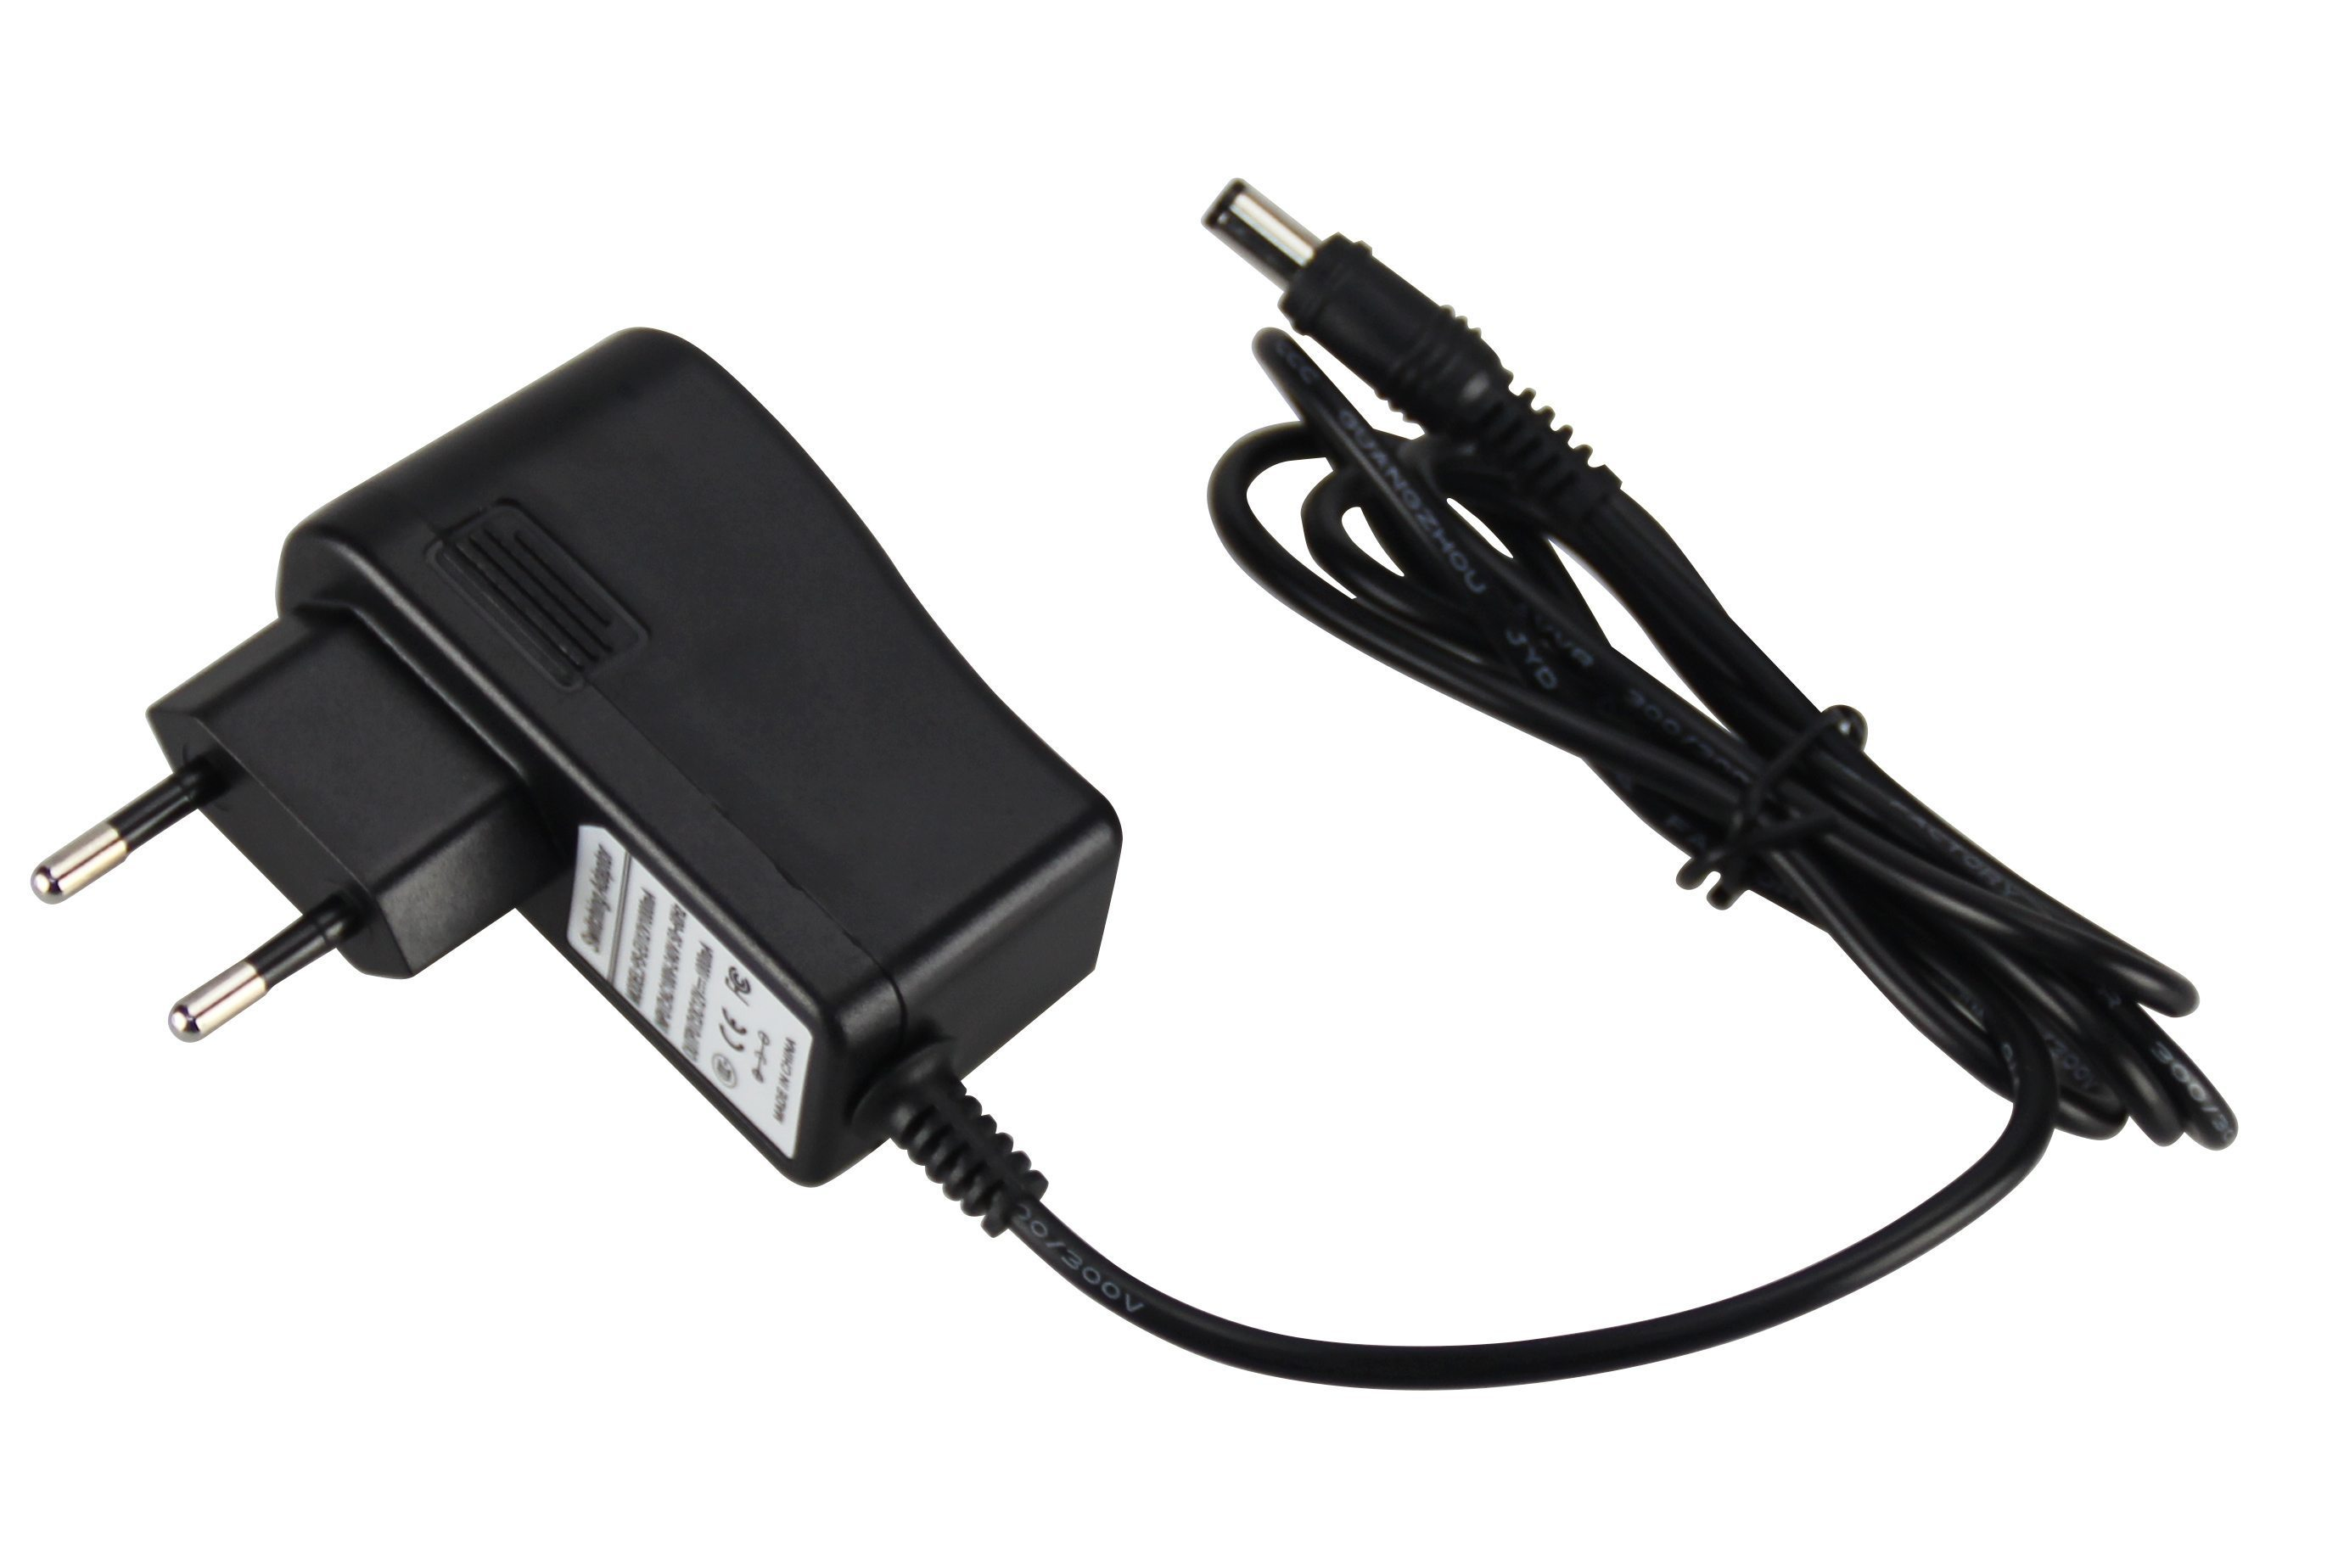 Power adapter for camera 12V 1000MA - PS-EU12V1000MA